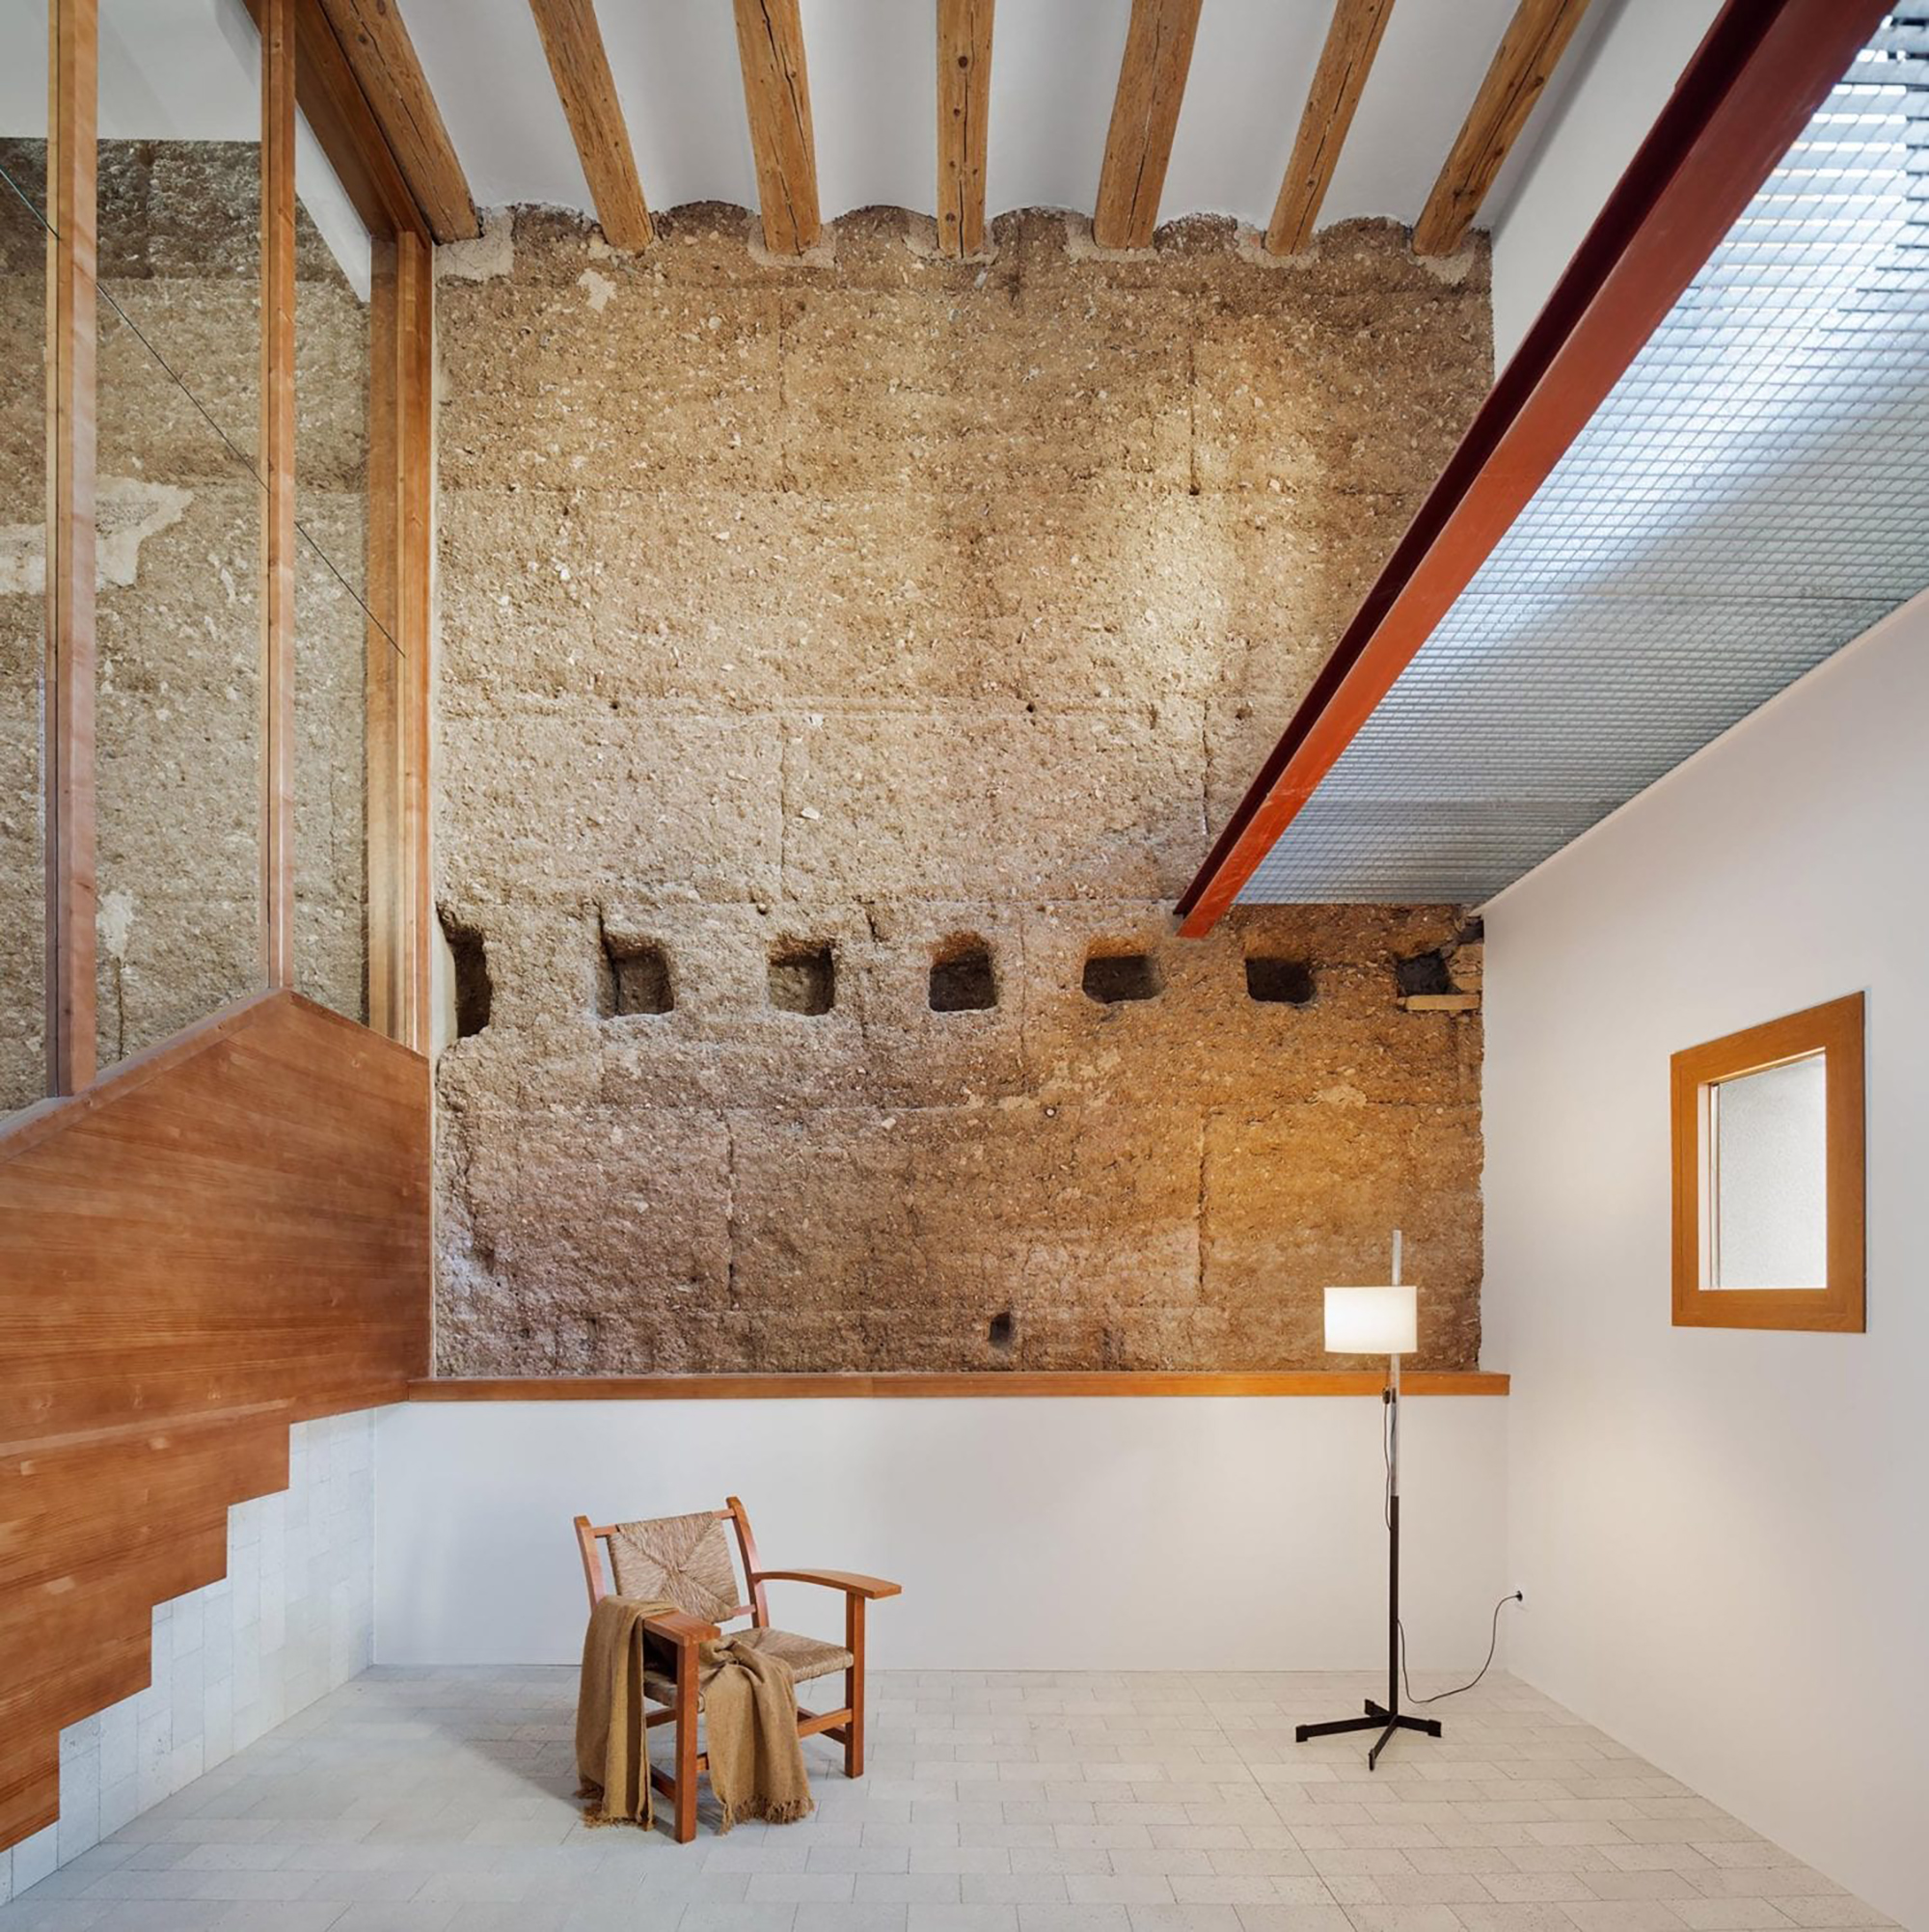 Spain, Sunday, Sanctuary, Interiors, Renovation, Stone, High ceilings